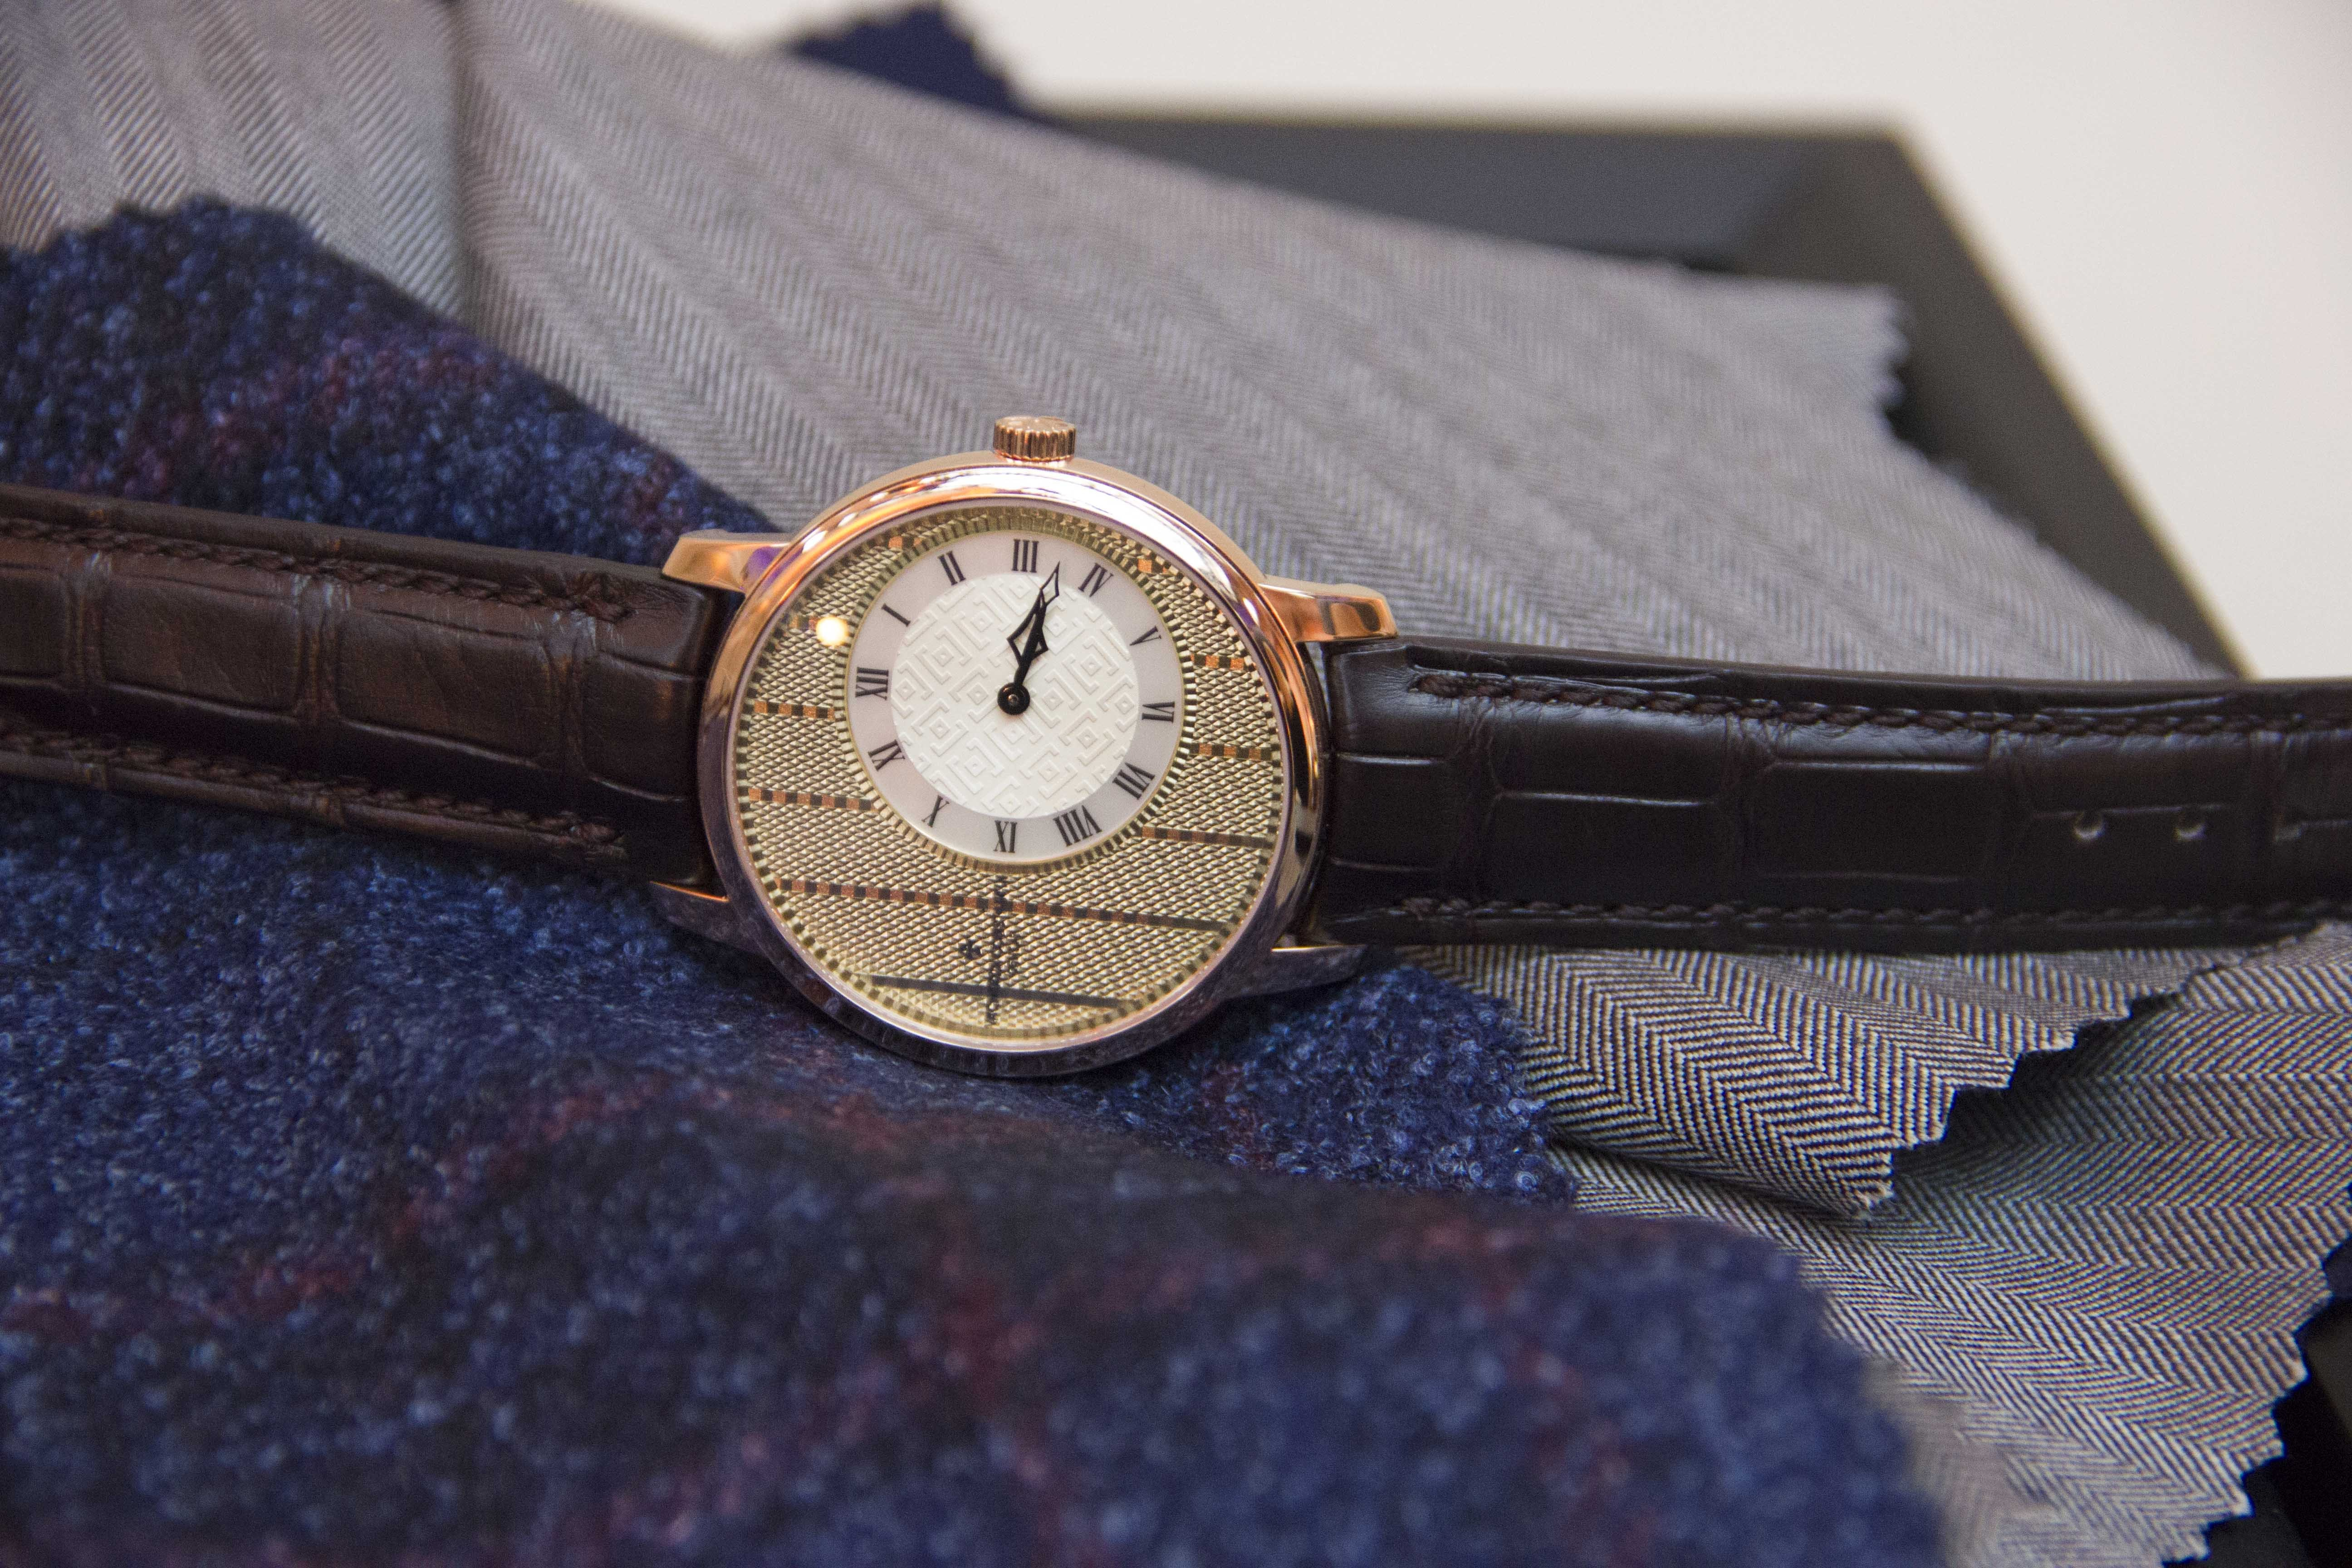 Introducing: The Vacheron Constantin Métiers d'Art Elégance Sartoriale, A Collection Dedicated To Matters Of Style (Live Pics, Pricing Information) Introducing: The Vacheron Constantin Métiers d'Art Elégance Sartoriale, A Collection Dedicated To Matters Of Style (Live Pics, Pricing Information) gallery PIN 10